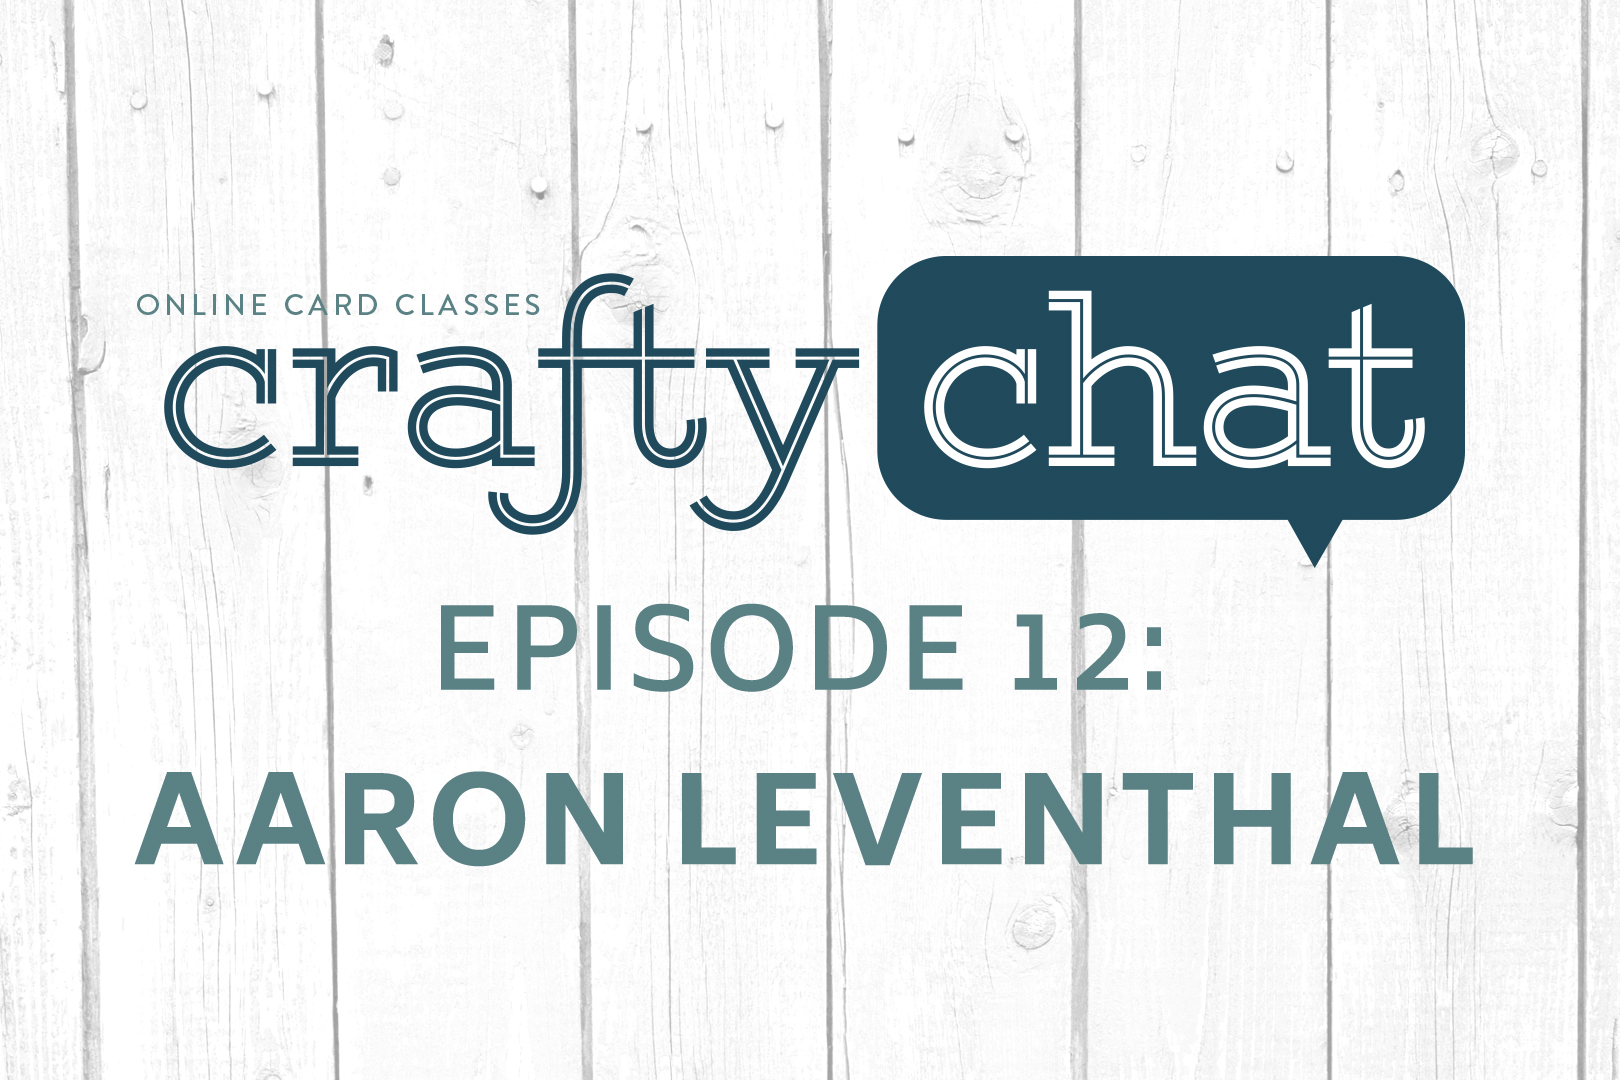 Crafty Chat Episode 12 - Aaron Leventhal